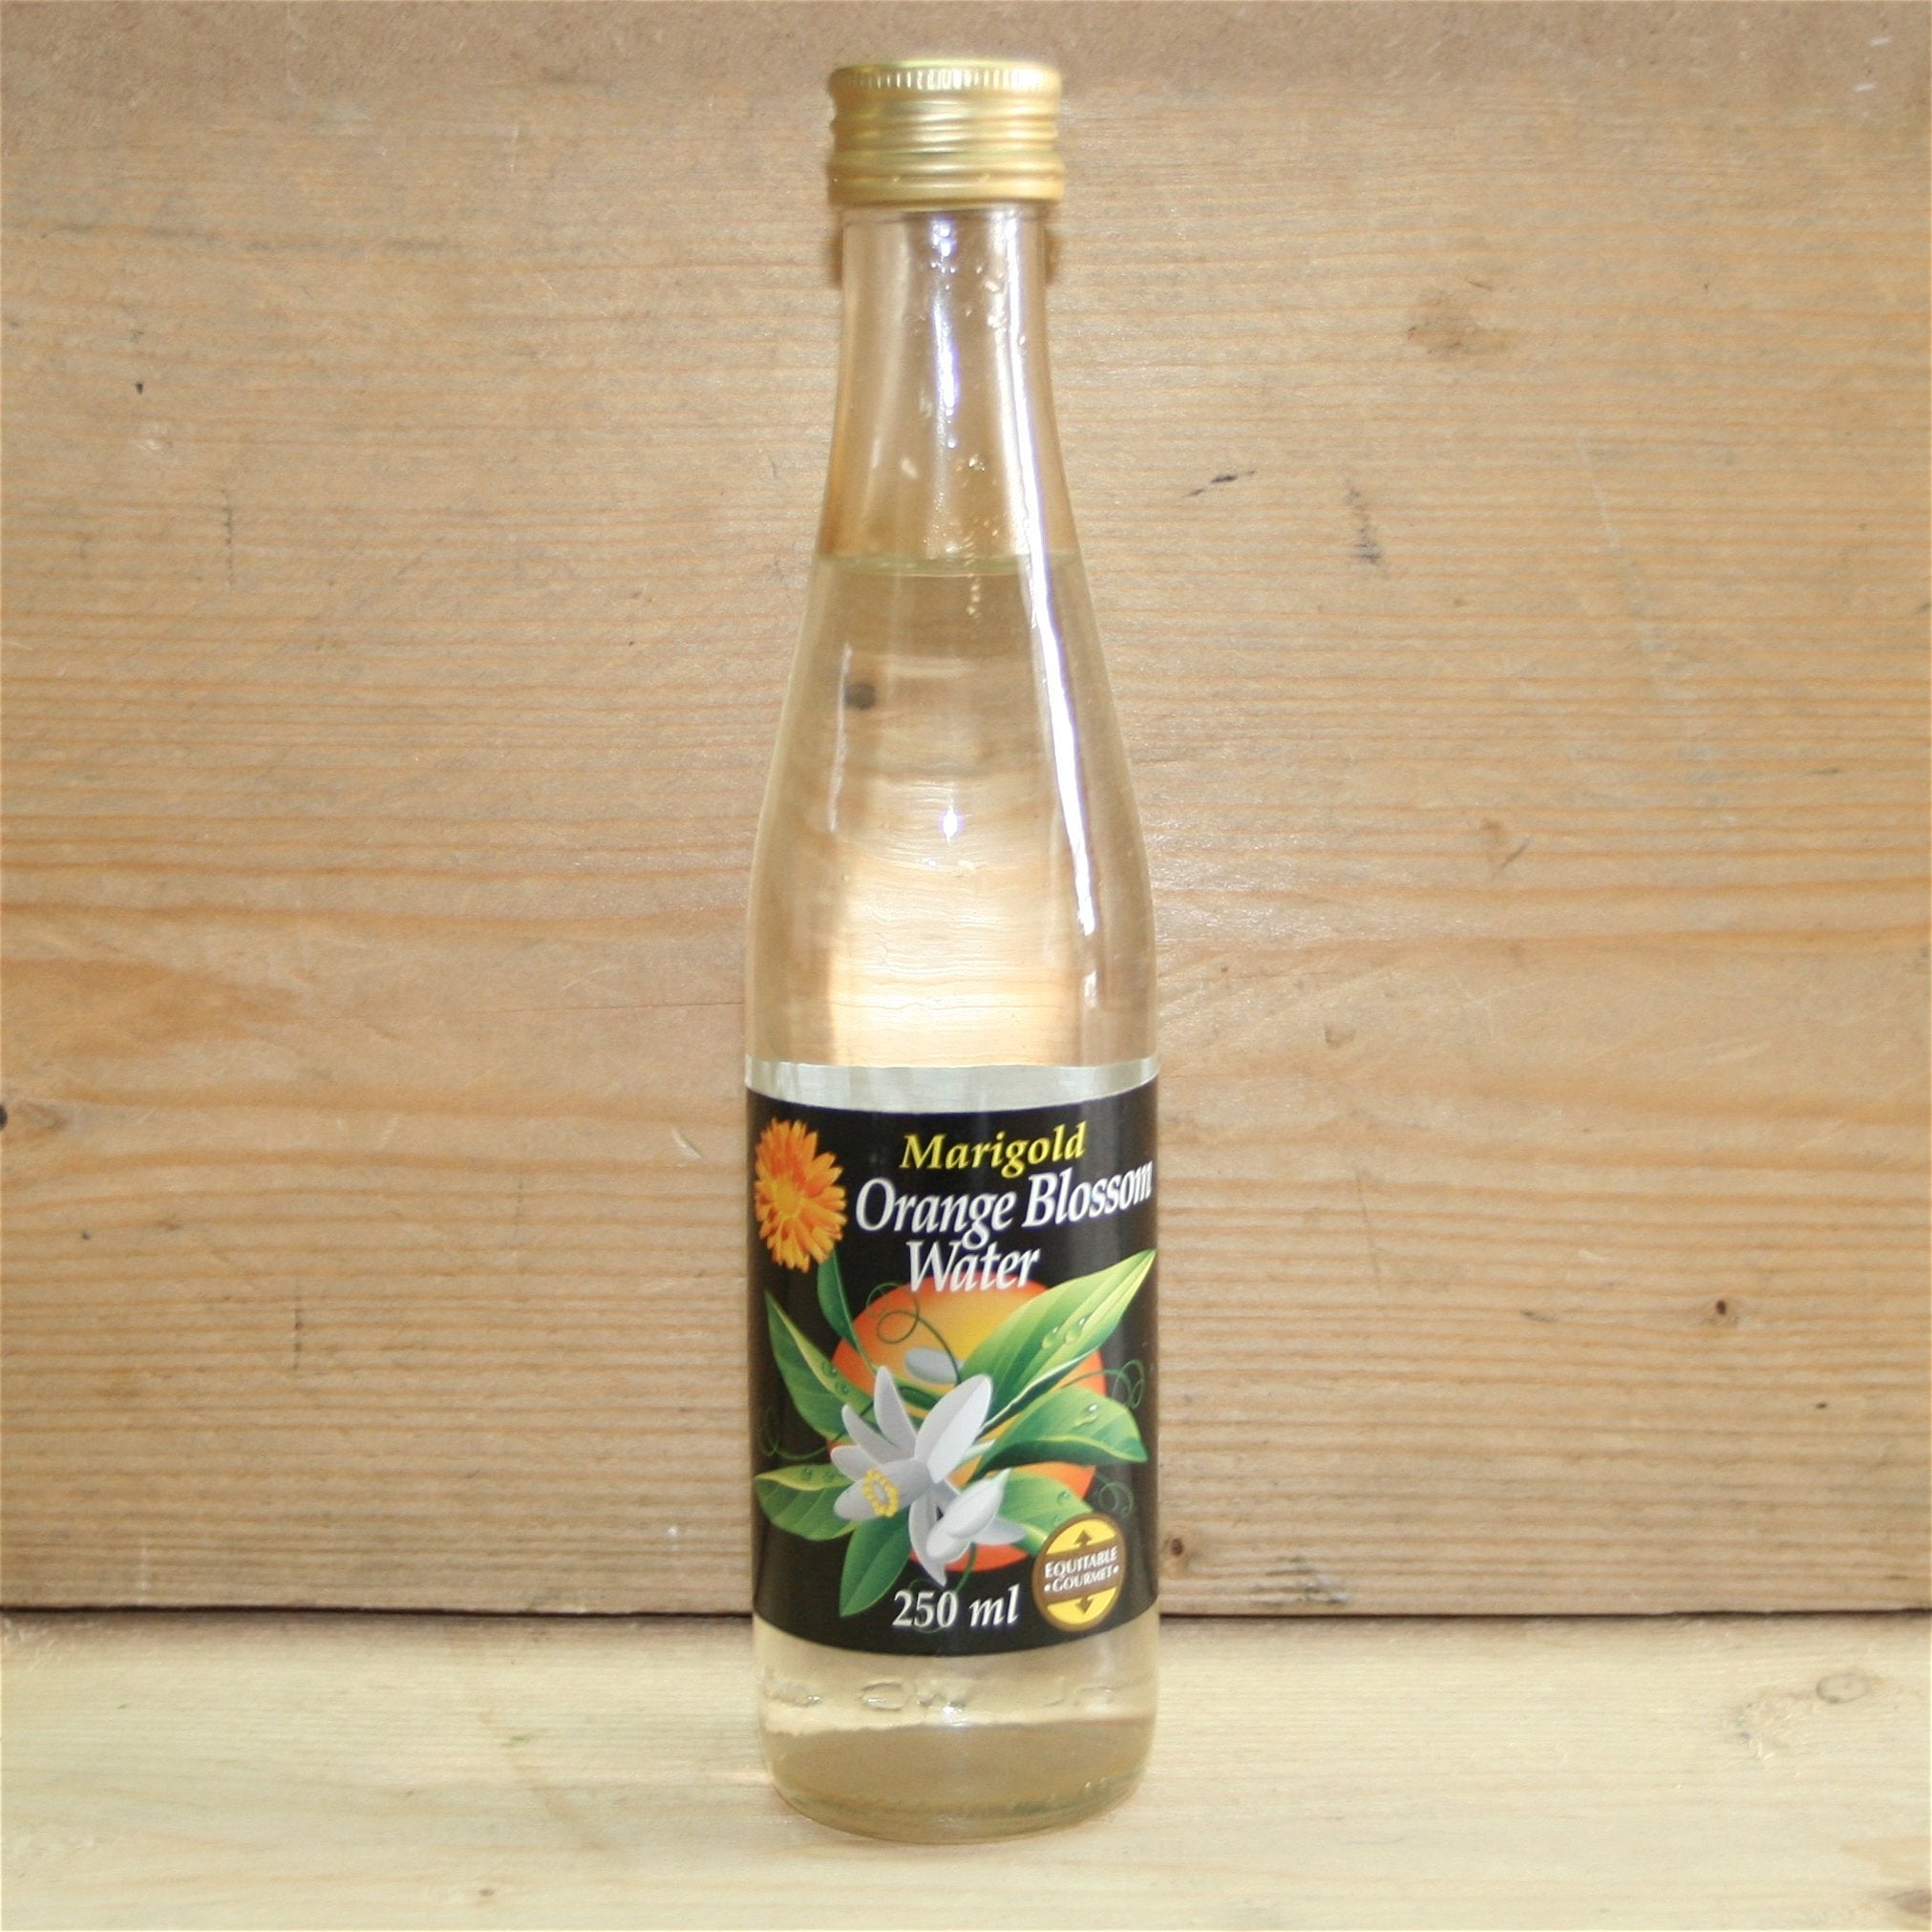 Marigold Orange Blossom Water 250ml SALE